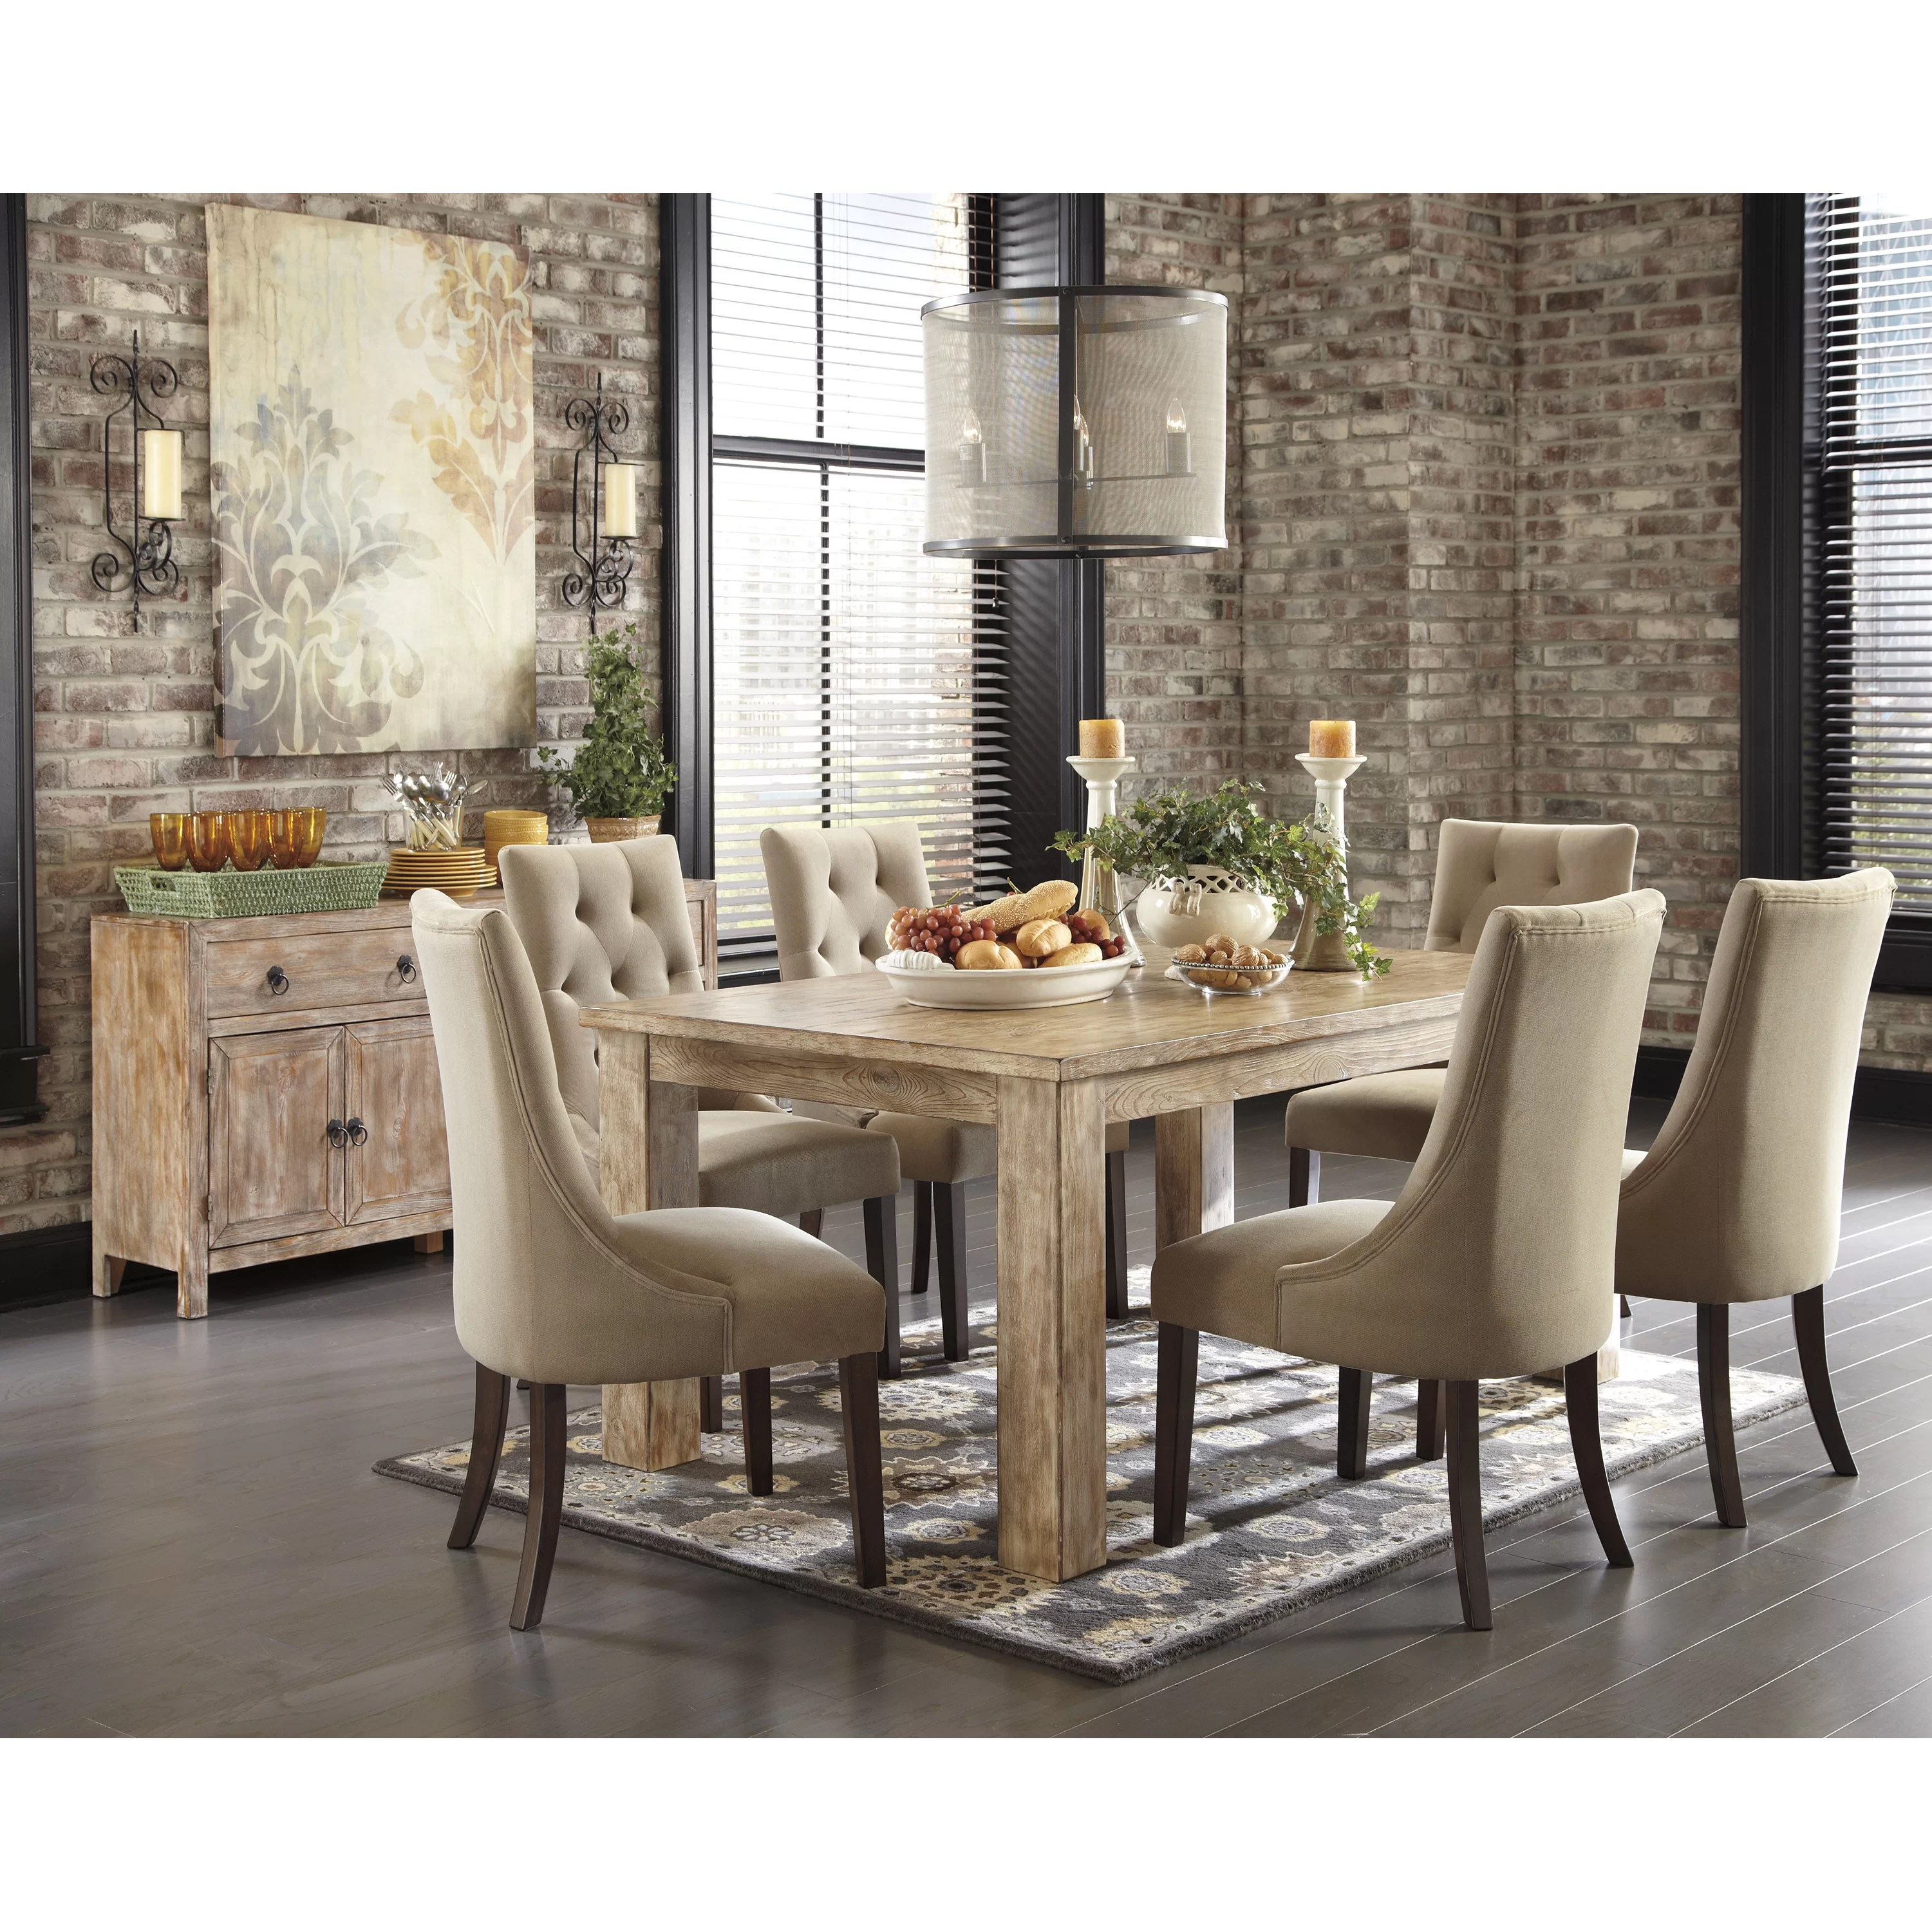 rectangular kitchen dining tables c a~ kitchen tables QUICK VIEW Castle Pines Dining Table